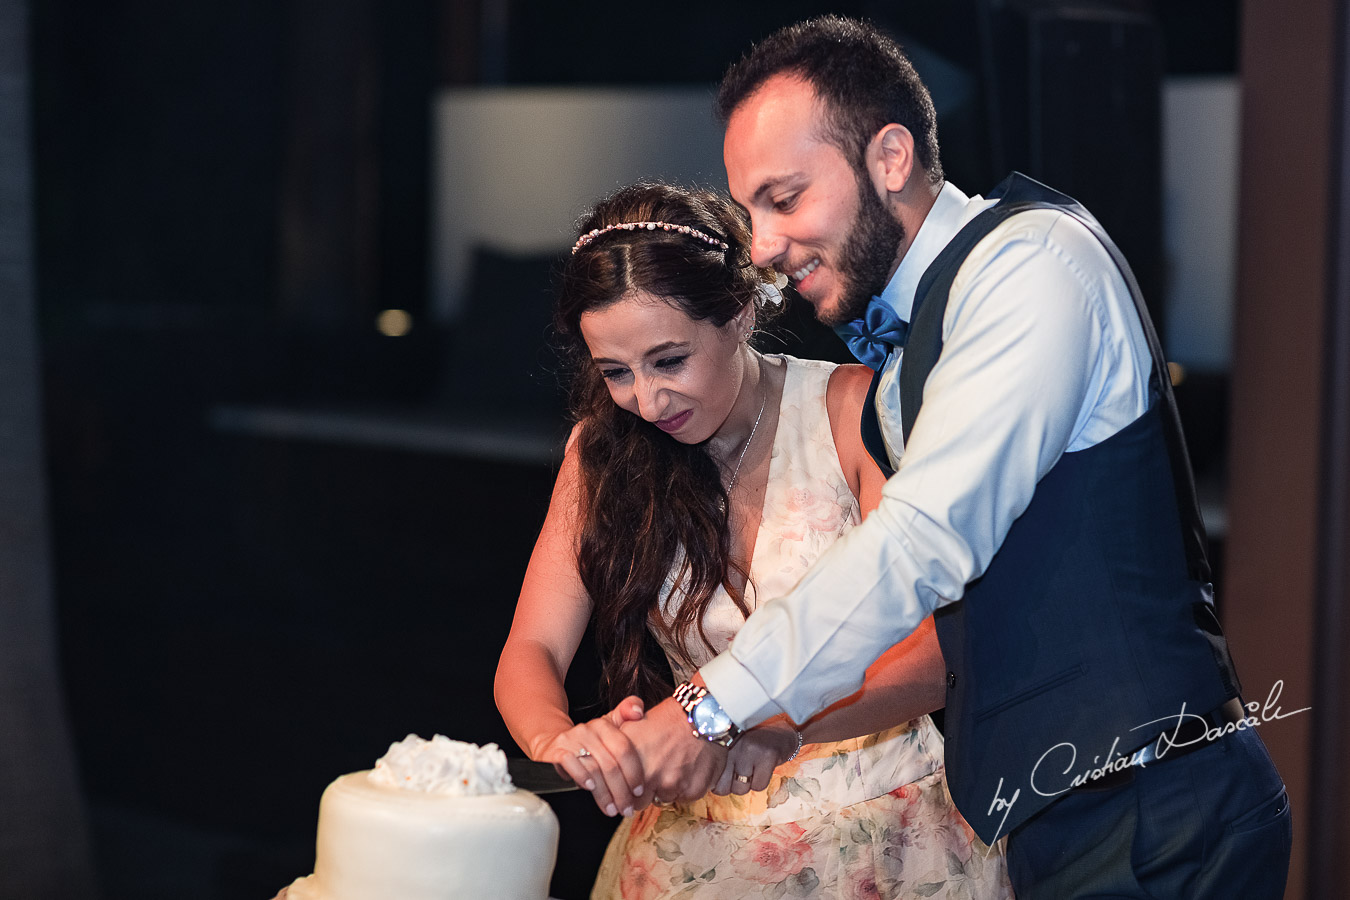 Funny moments when the couple is cutting the cake photographed as part of an Exclusive Wedding photography at Grand Resort Limassol, captured by Cyprus Wedding Photographer Cristian Dascalu.